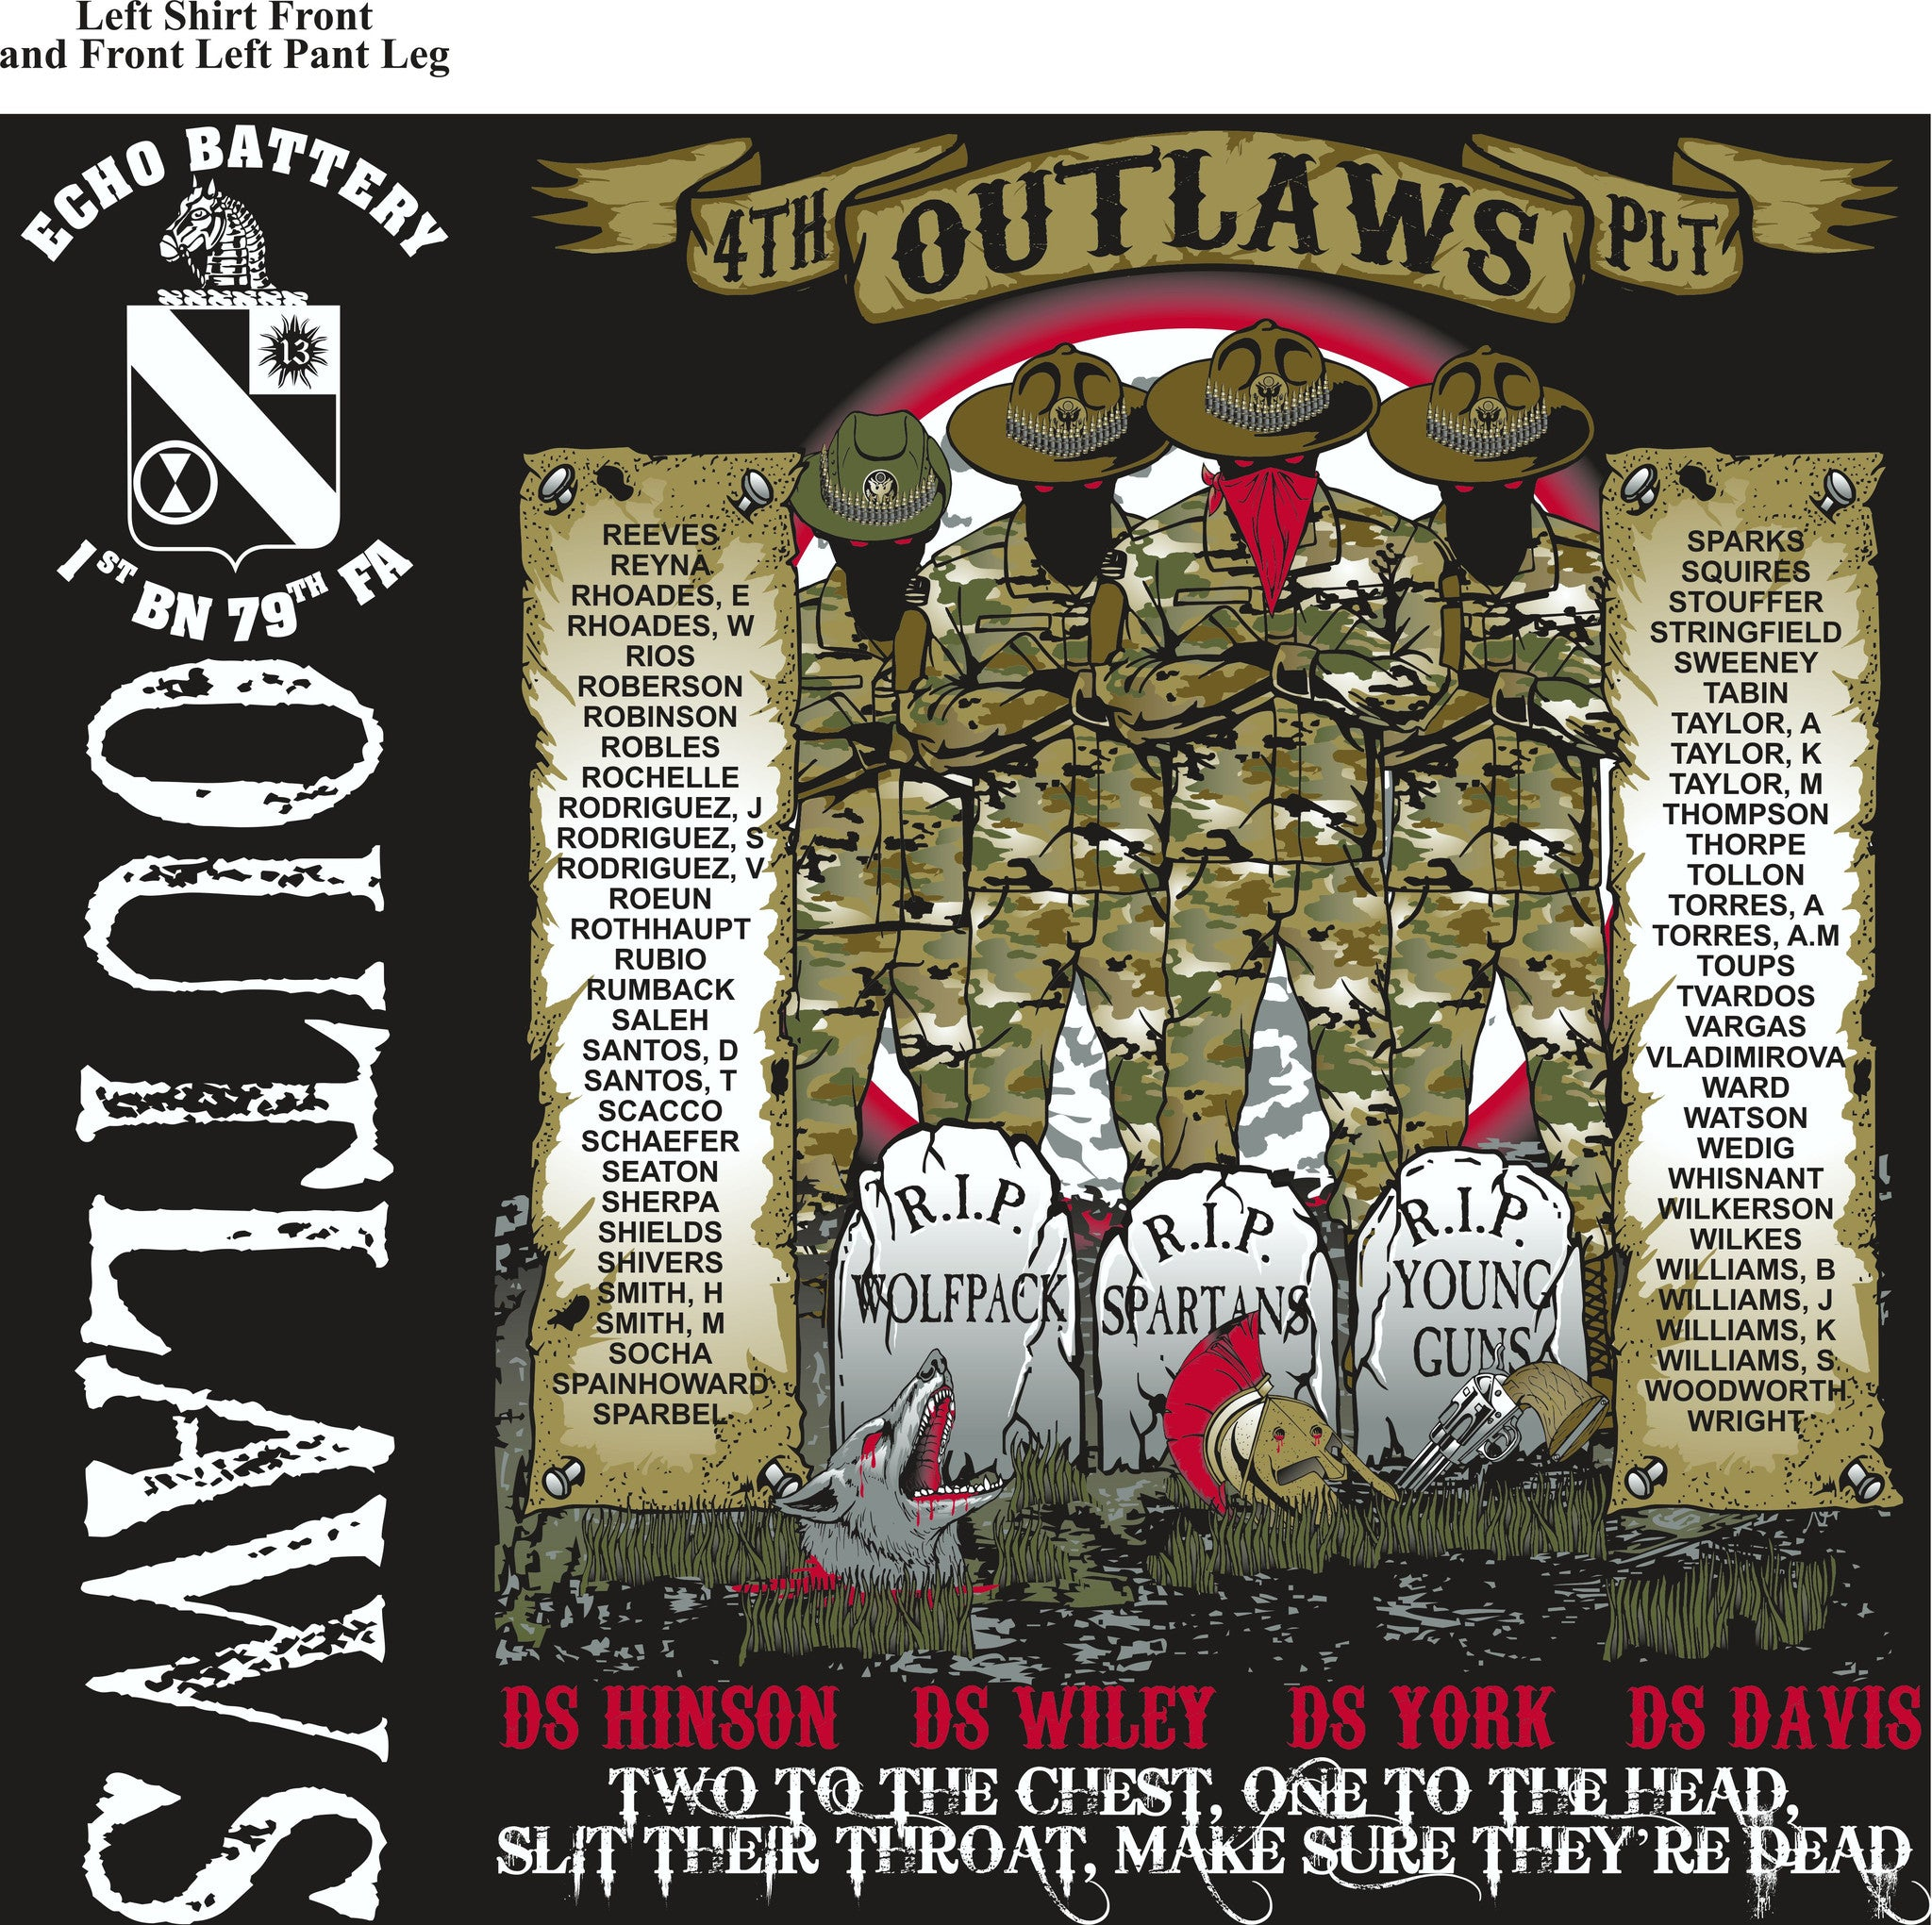 PLATOON SHIRTS (2nd generation print) ECHO 1st 79th OUTLAWS OCT 2016